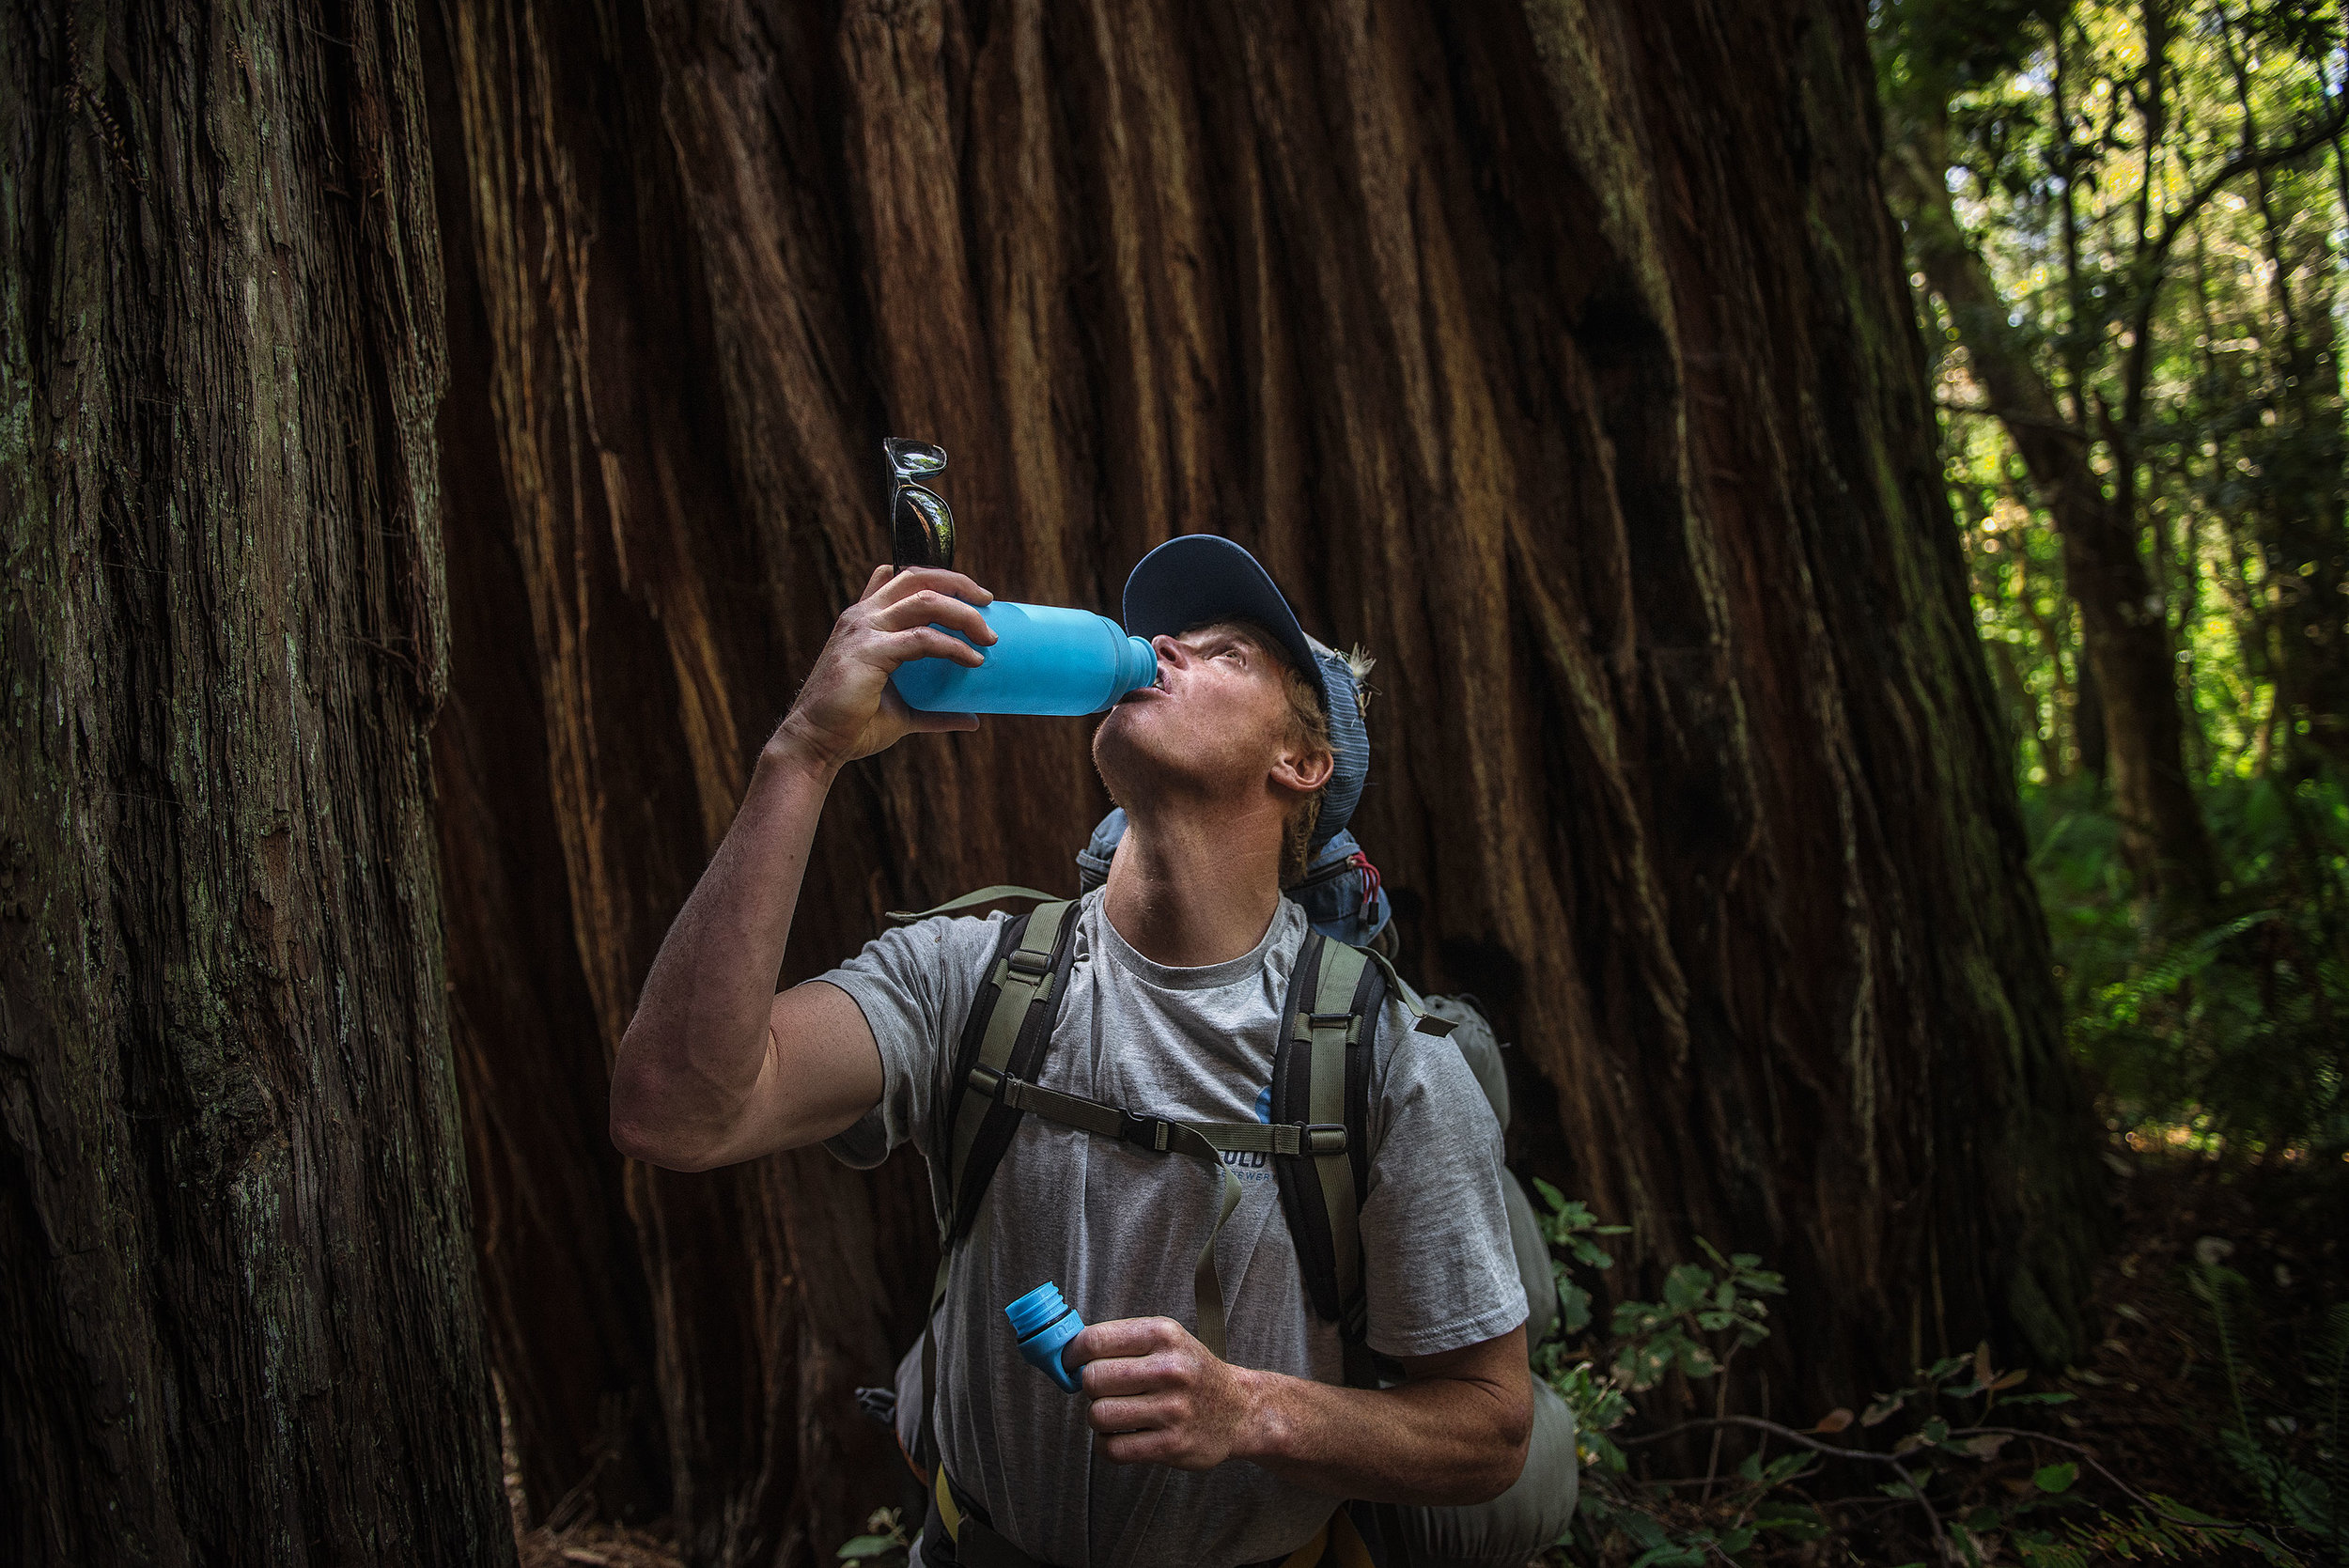 austin-trigg-redwood-water-bottle-Mizu-drink-tall-tree-grove-forest-camping-backpacking-hike-lifestyle-california-adventure.jpg